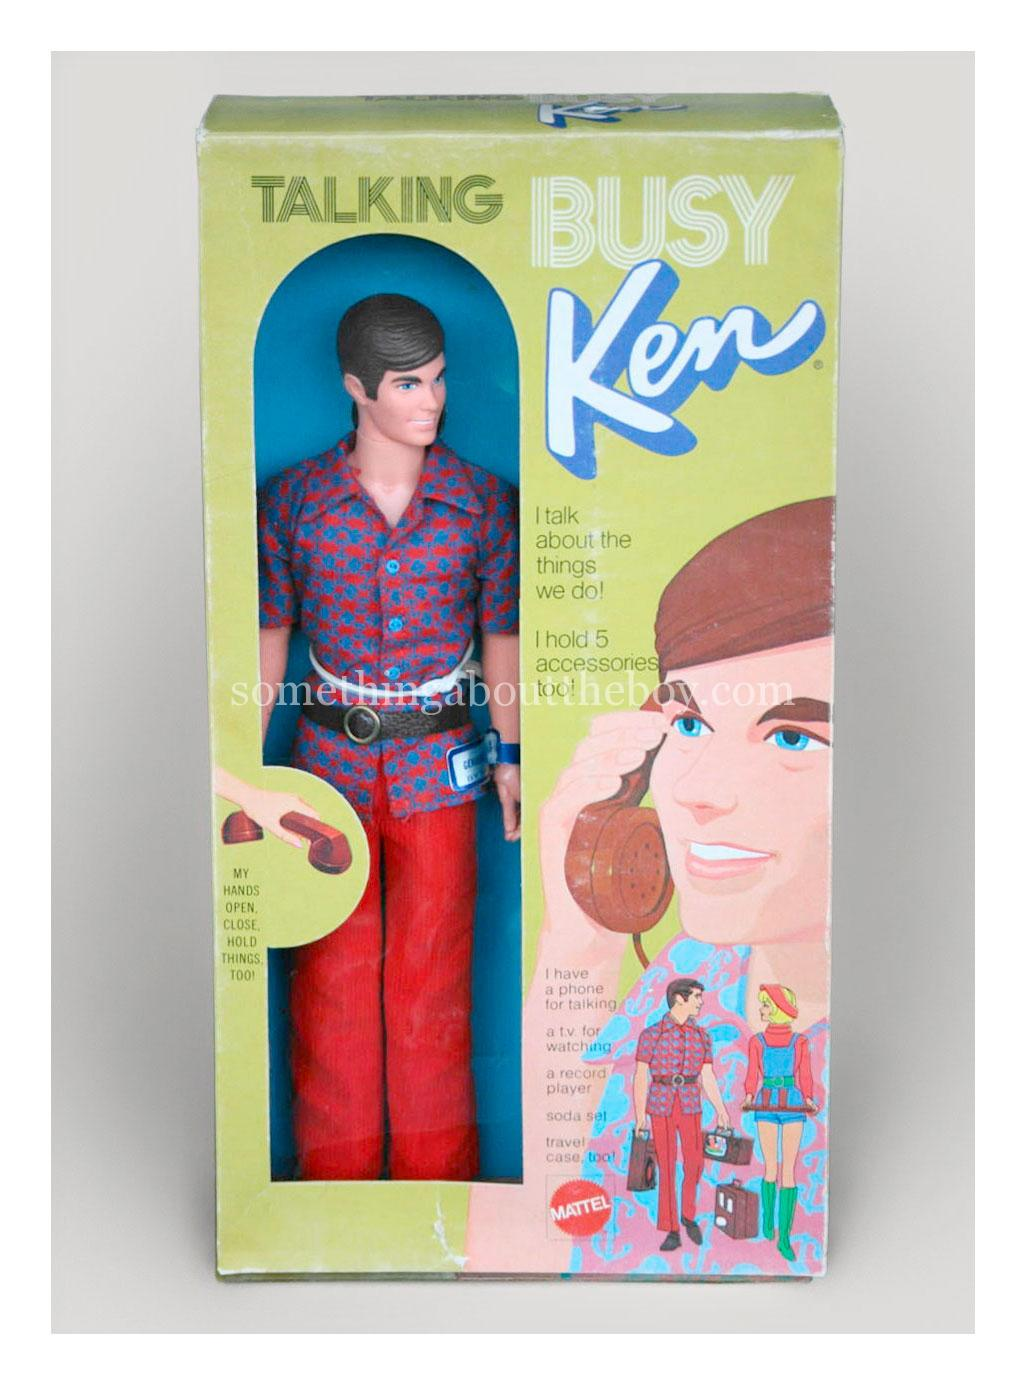 1972 #1196 Busy Talking Ken Canadian packaging